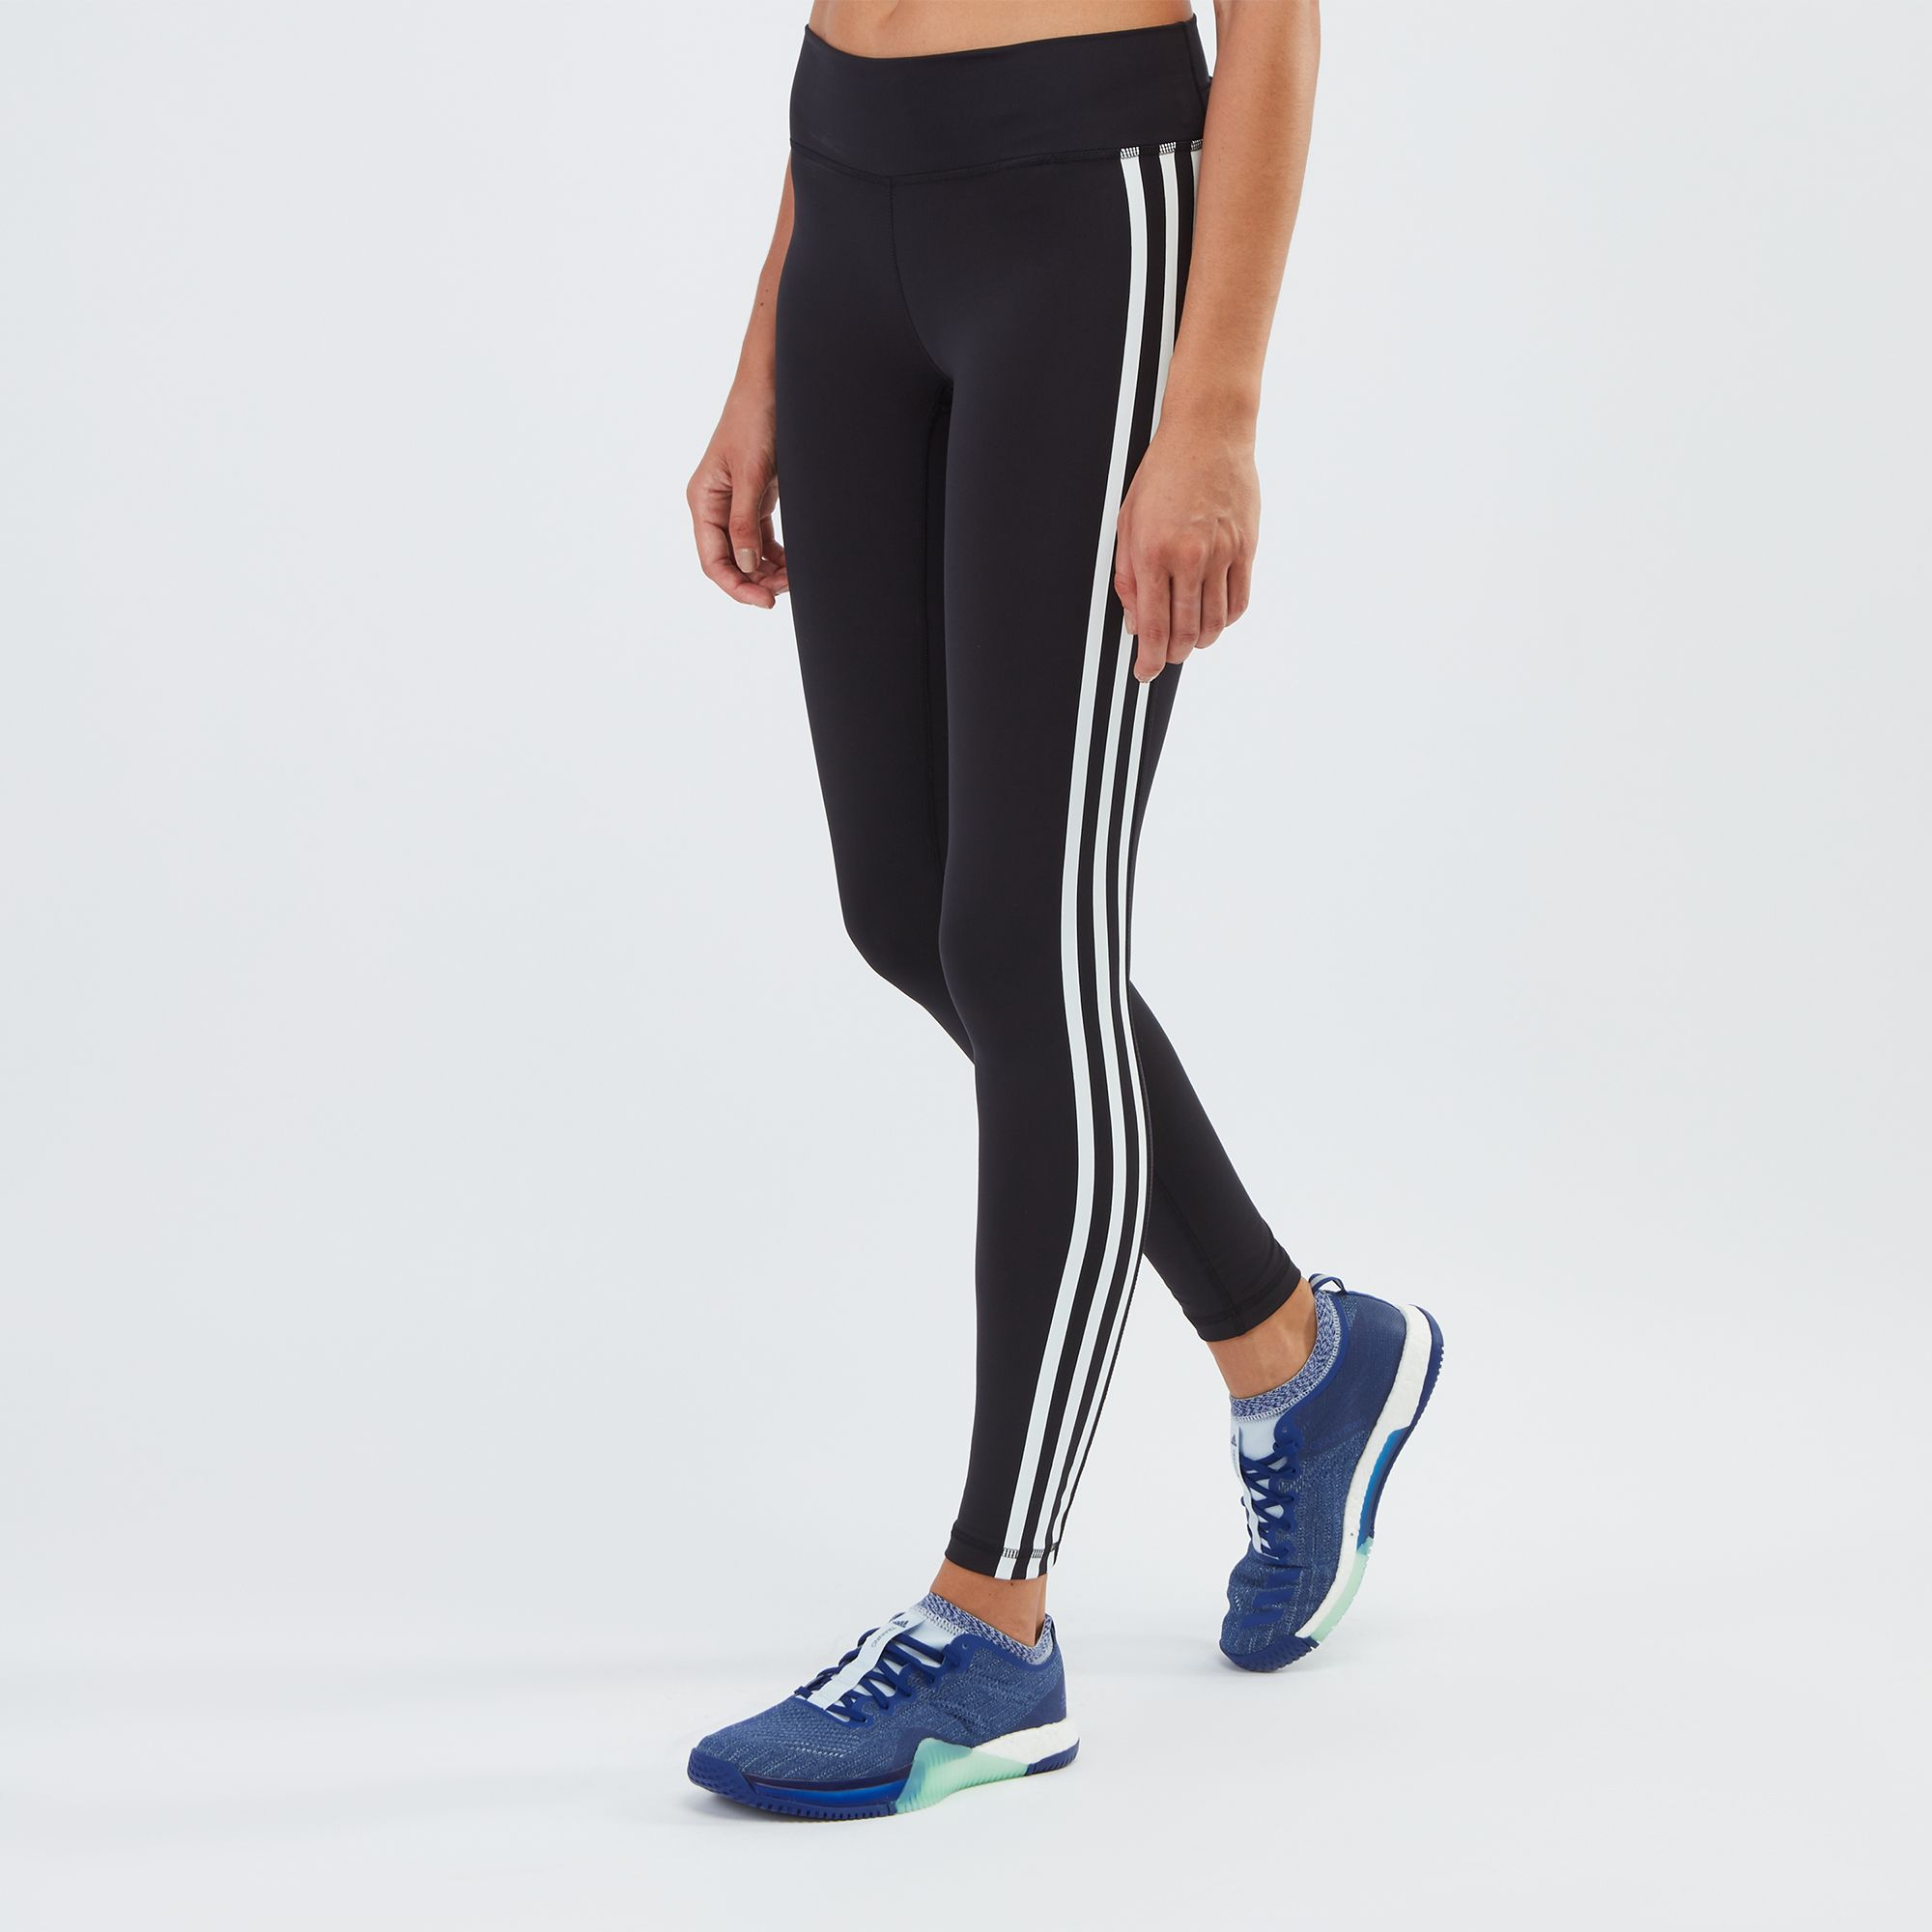 f134a9d2ad7a59 adidas Believe This 3-Stripes Leggings | Full Length Leggings ...